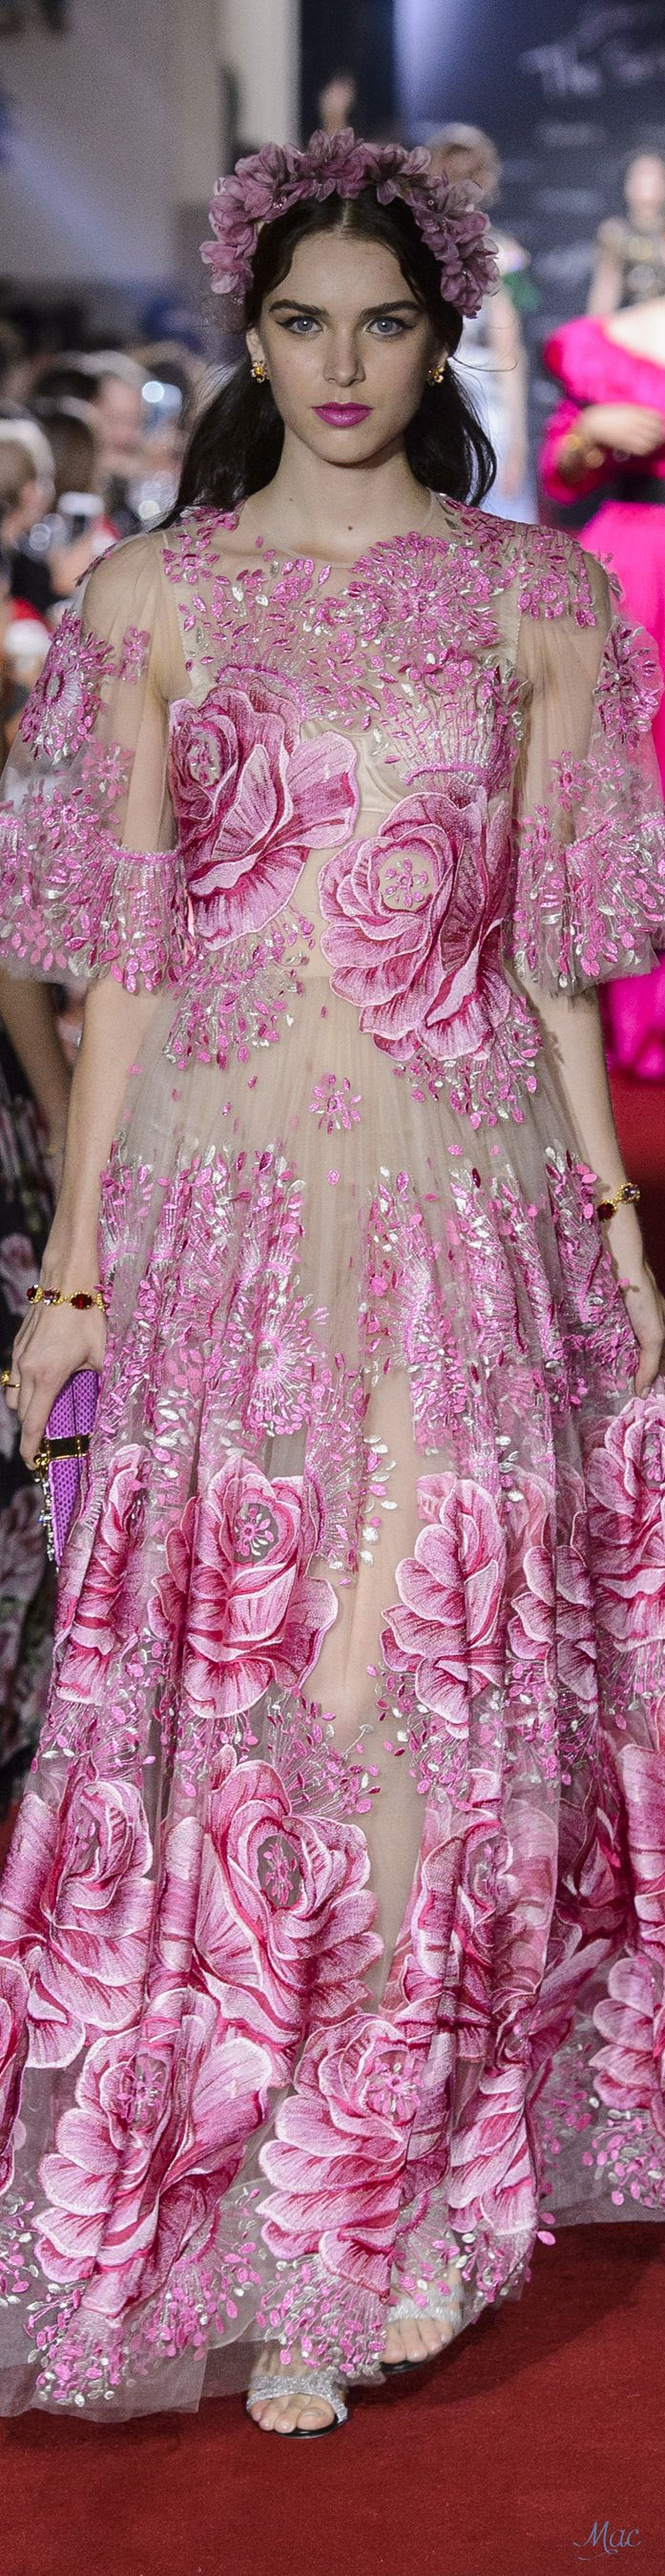 75 best Pink Slip! images on Pinterest   Pretty in pink, 50 shades ...